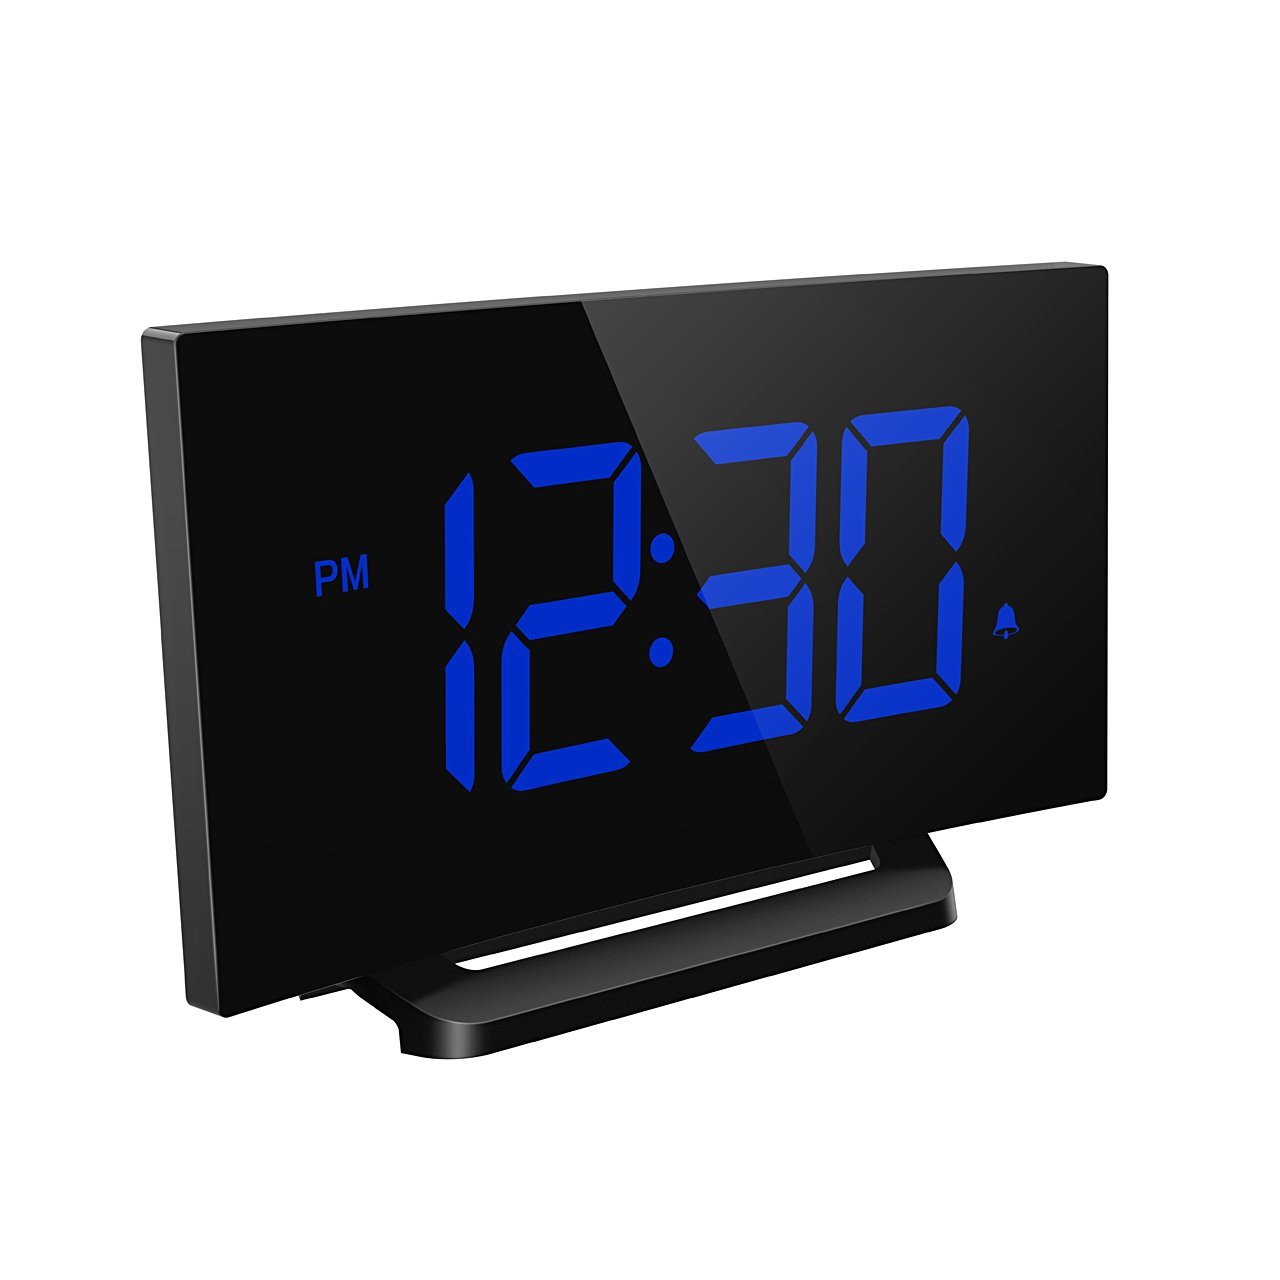 Mpow Digital Alarm Clock, Curved-screen Clock with 3.75'' LED Dimmer Digits Display, Bedside Alarm Clock with 3 Alarm Sounds, 30 Minute Ring Time, 12/24 Hour, Backup for Clock Setting by Mpow